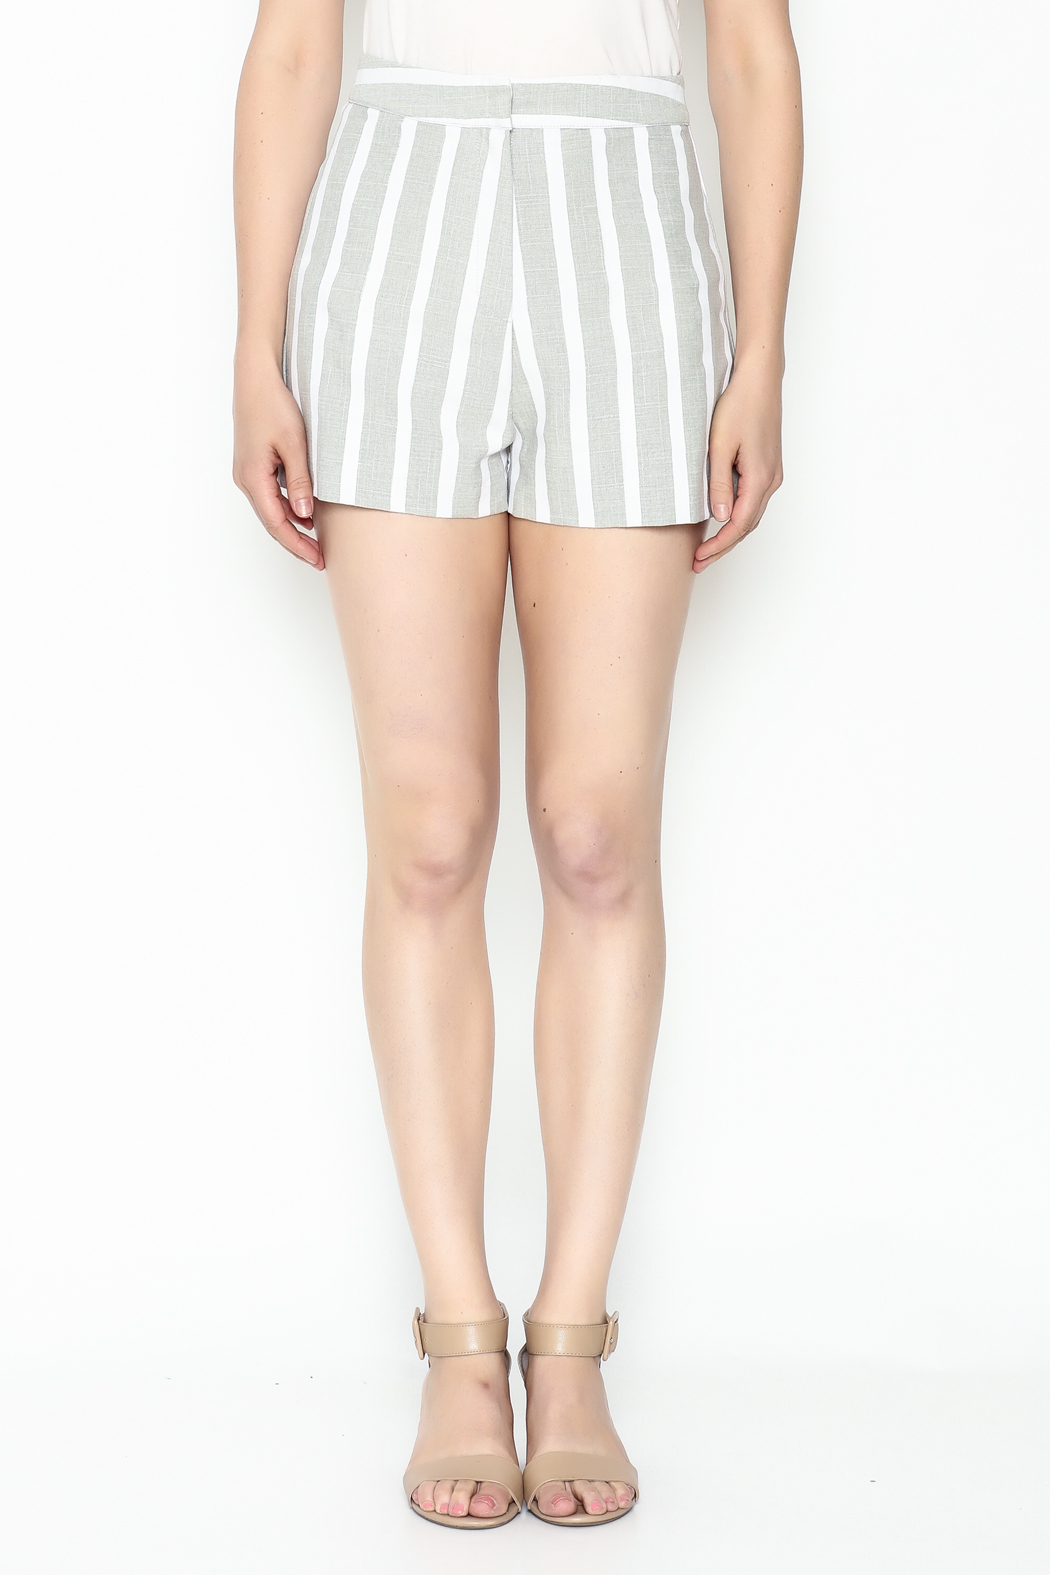 After Market Striped Grey Shorts - Front Full Image